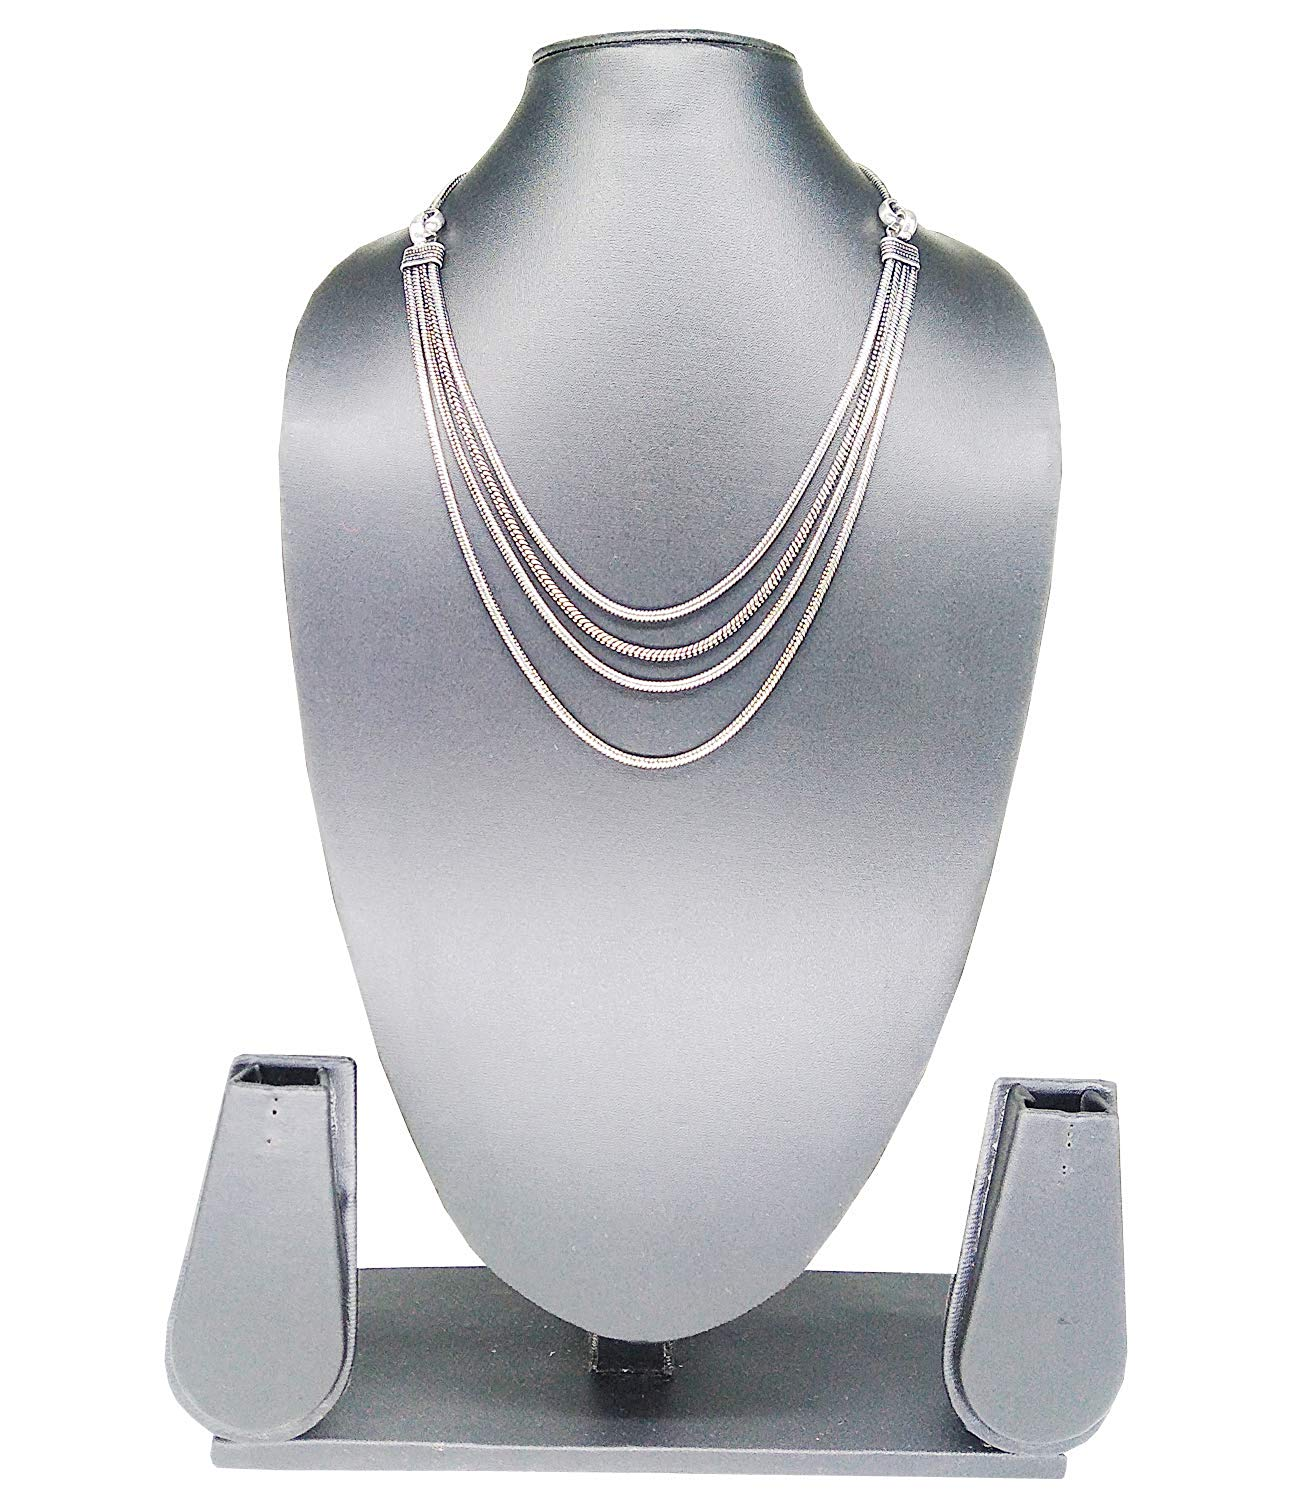 Stunning Silver Plated Multi Layer Chain Necklace (Silver) - Bagaholics Gift